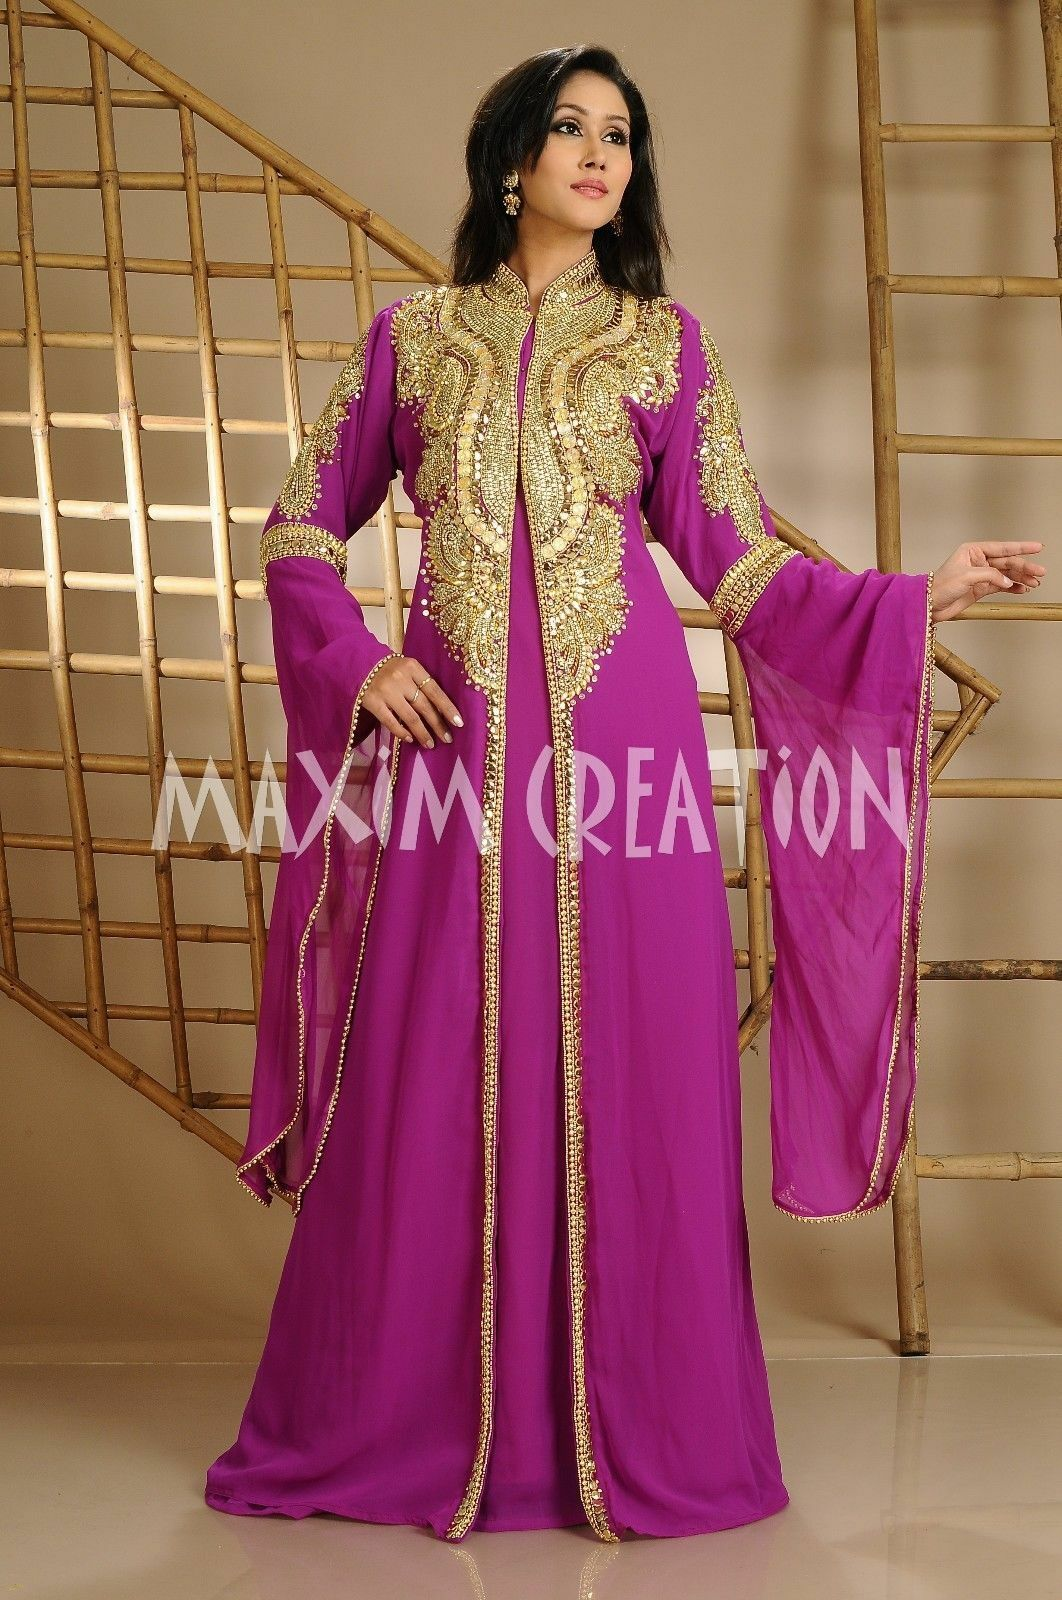 MAGENTA ROYAL MgoldCCAN KAFTAN ARABIC TRADITIONAL EXCLUSIVE HAND EMBROIDERY WORK.